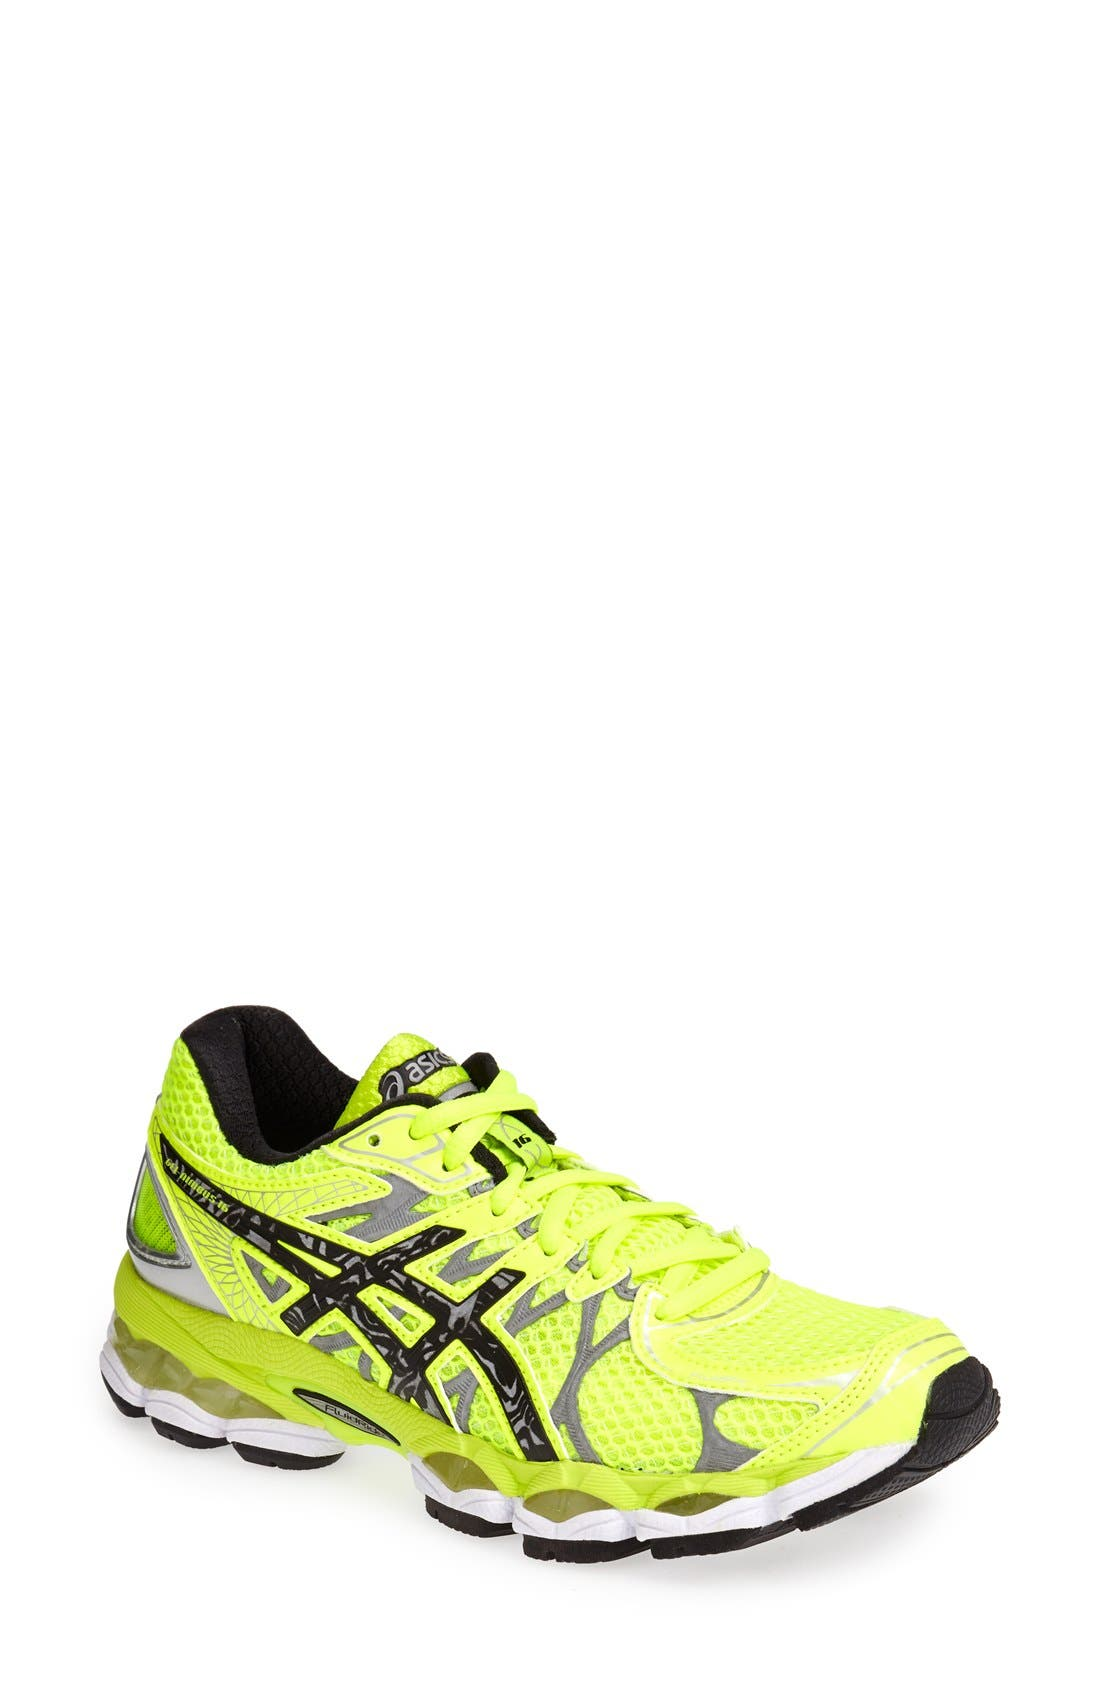 Alternate Image 1 Selected - ASICS® 'GEL-Nimbus 16 Lite-Show' Running Shoe (Women)